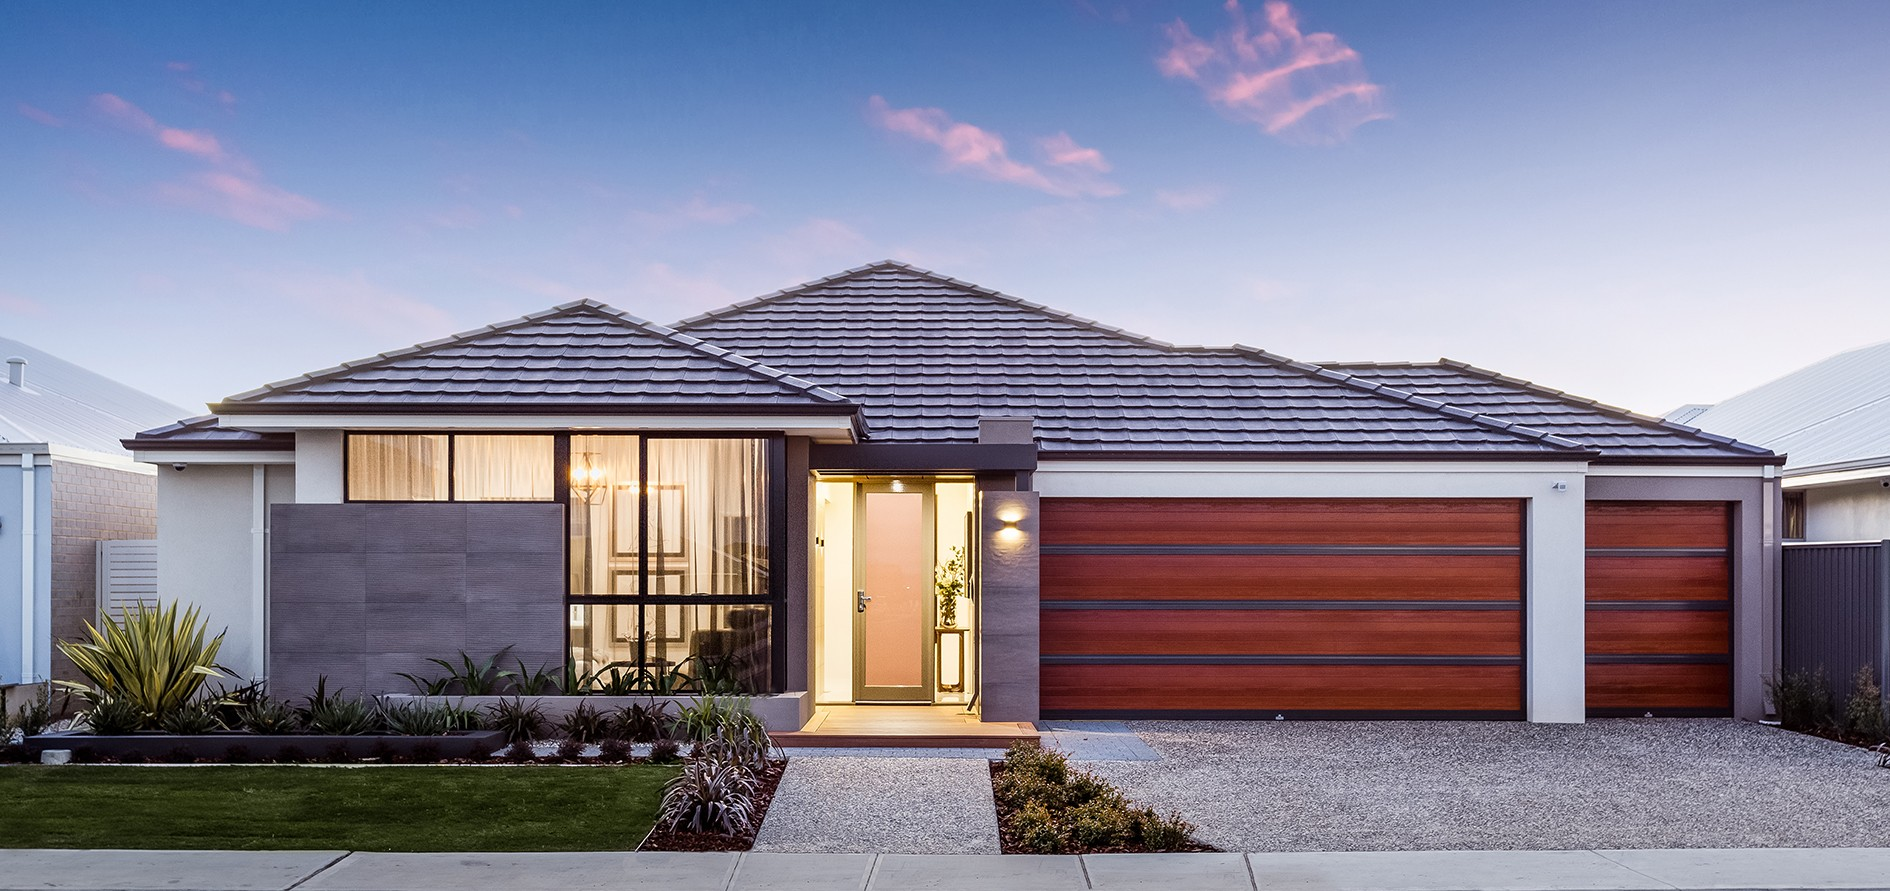 Project homes perth